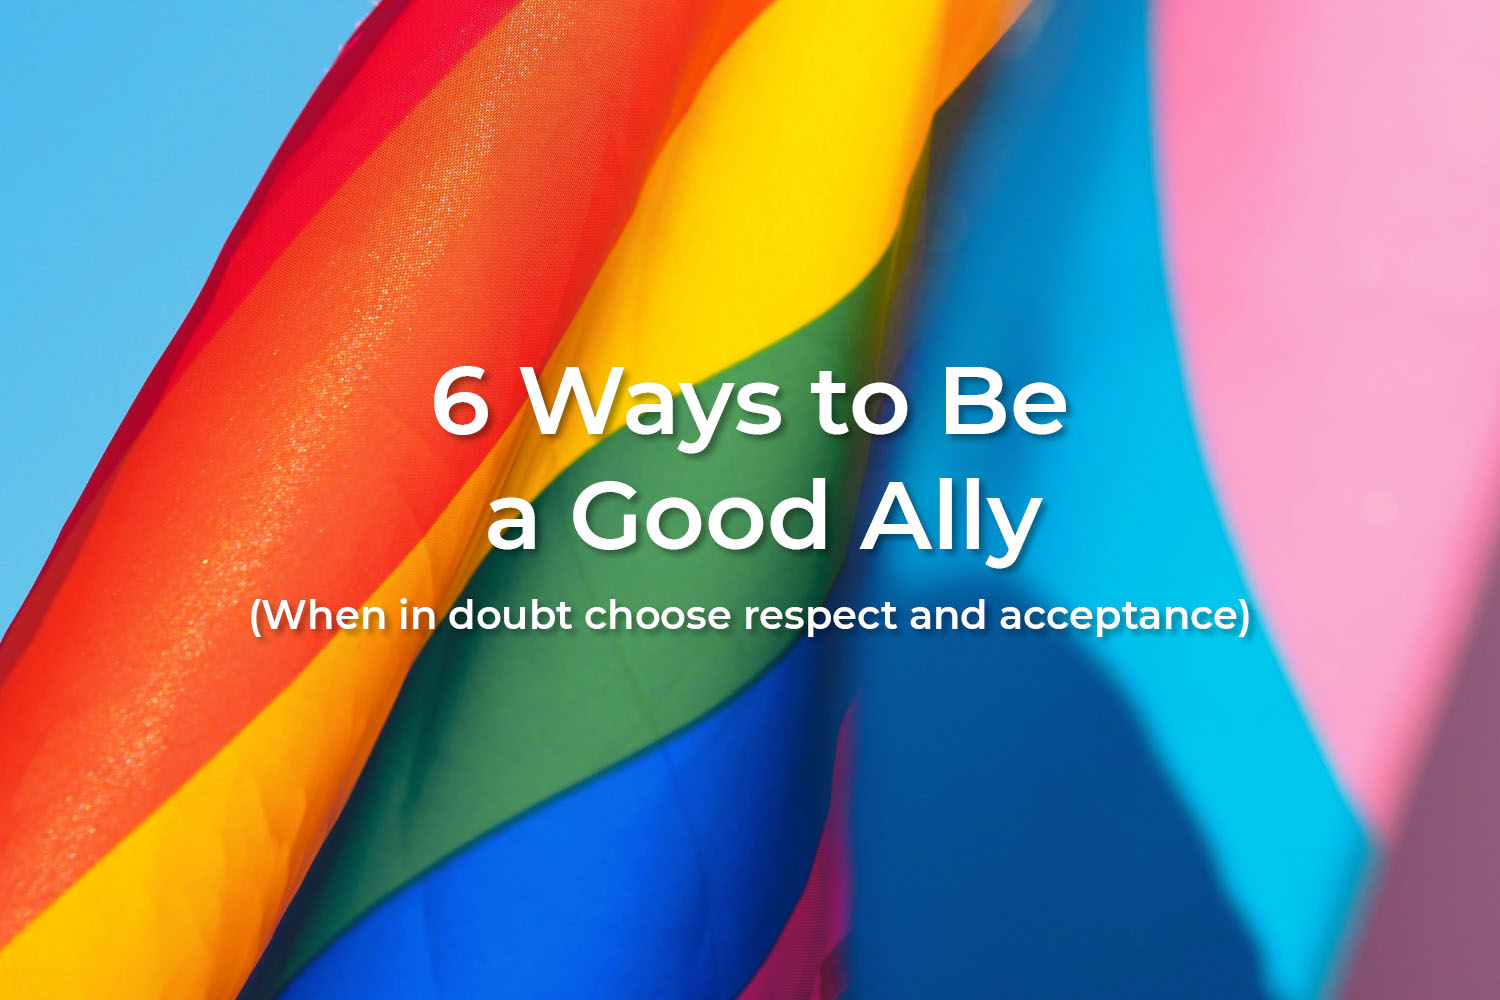 6 Ways to Be a Good Ally